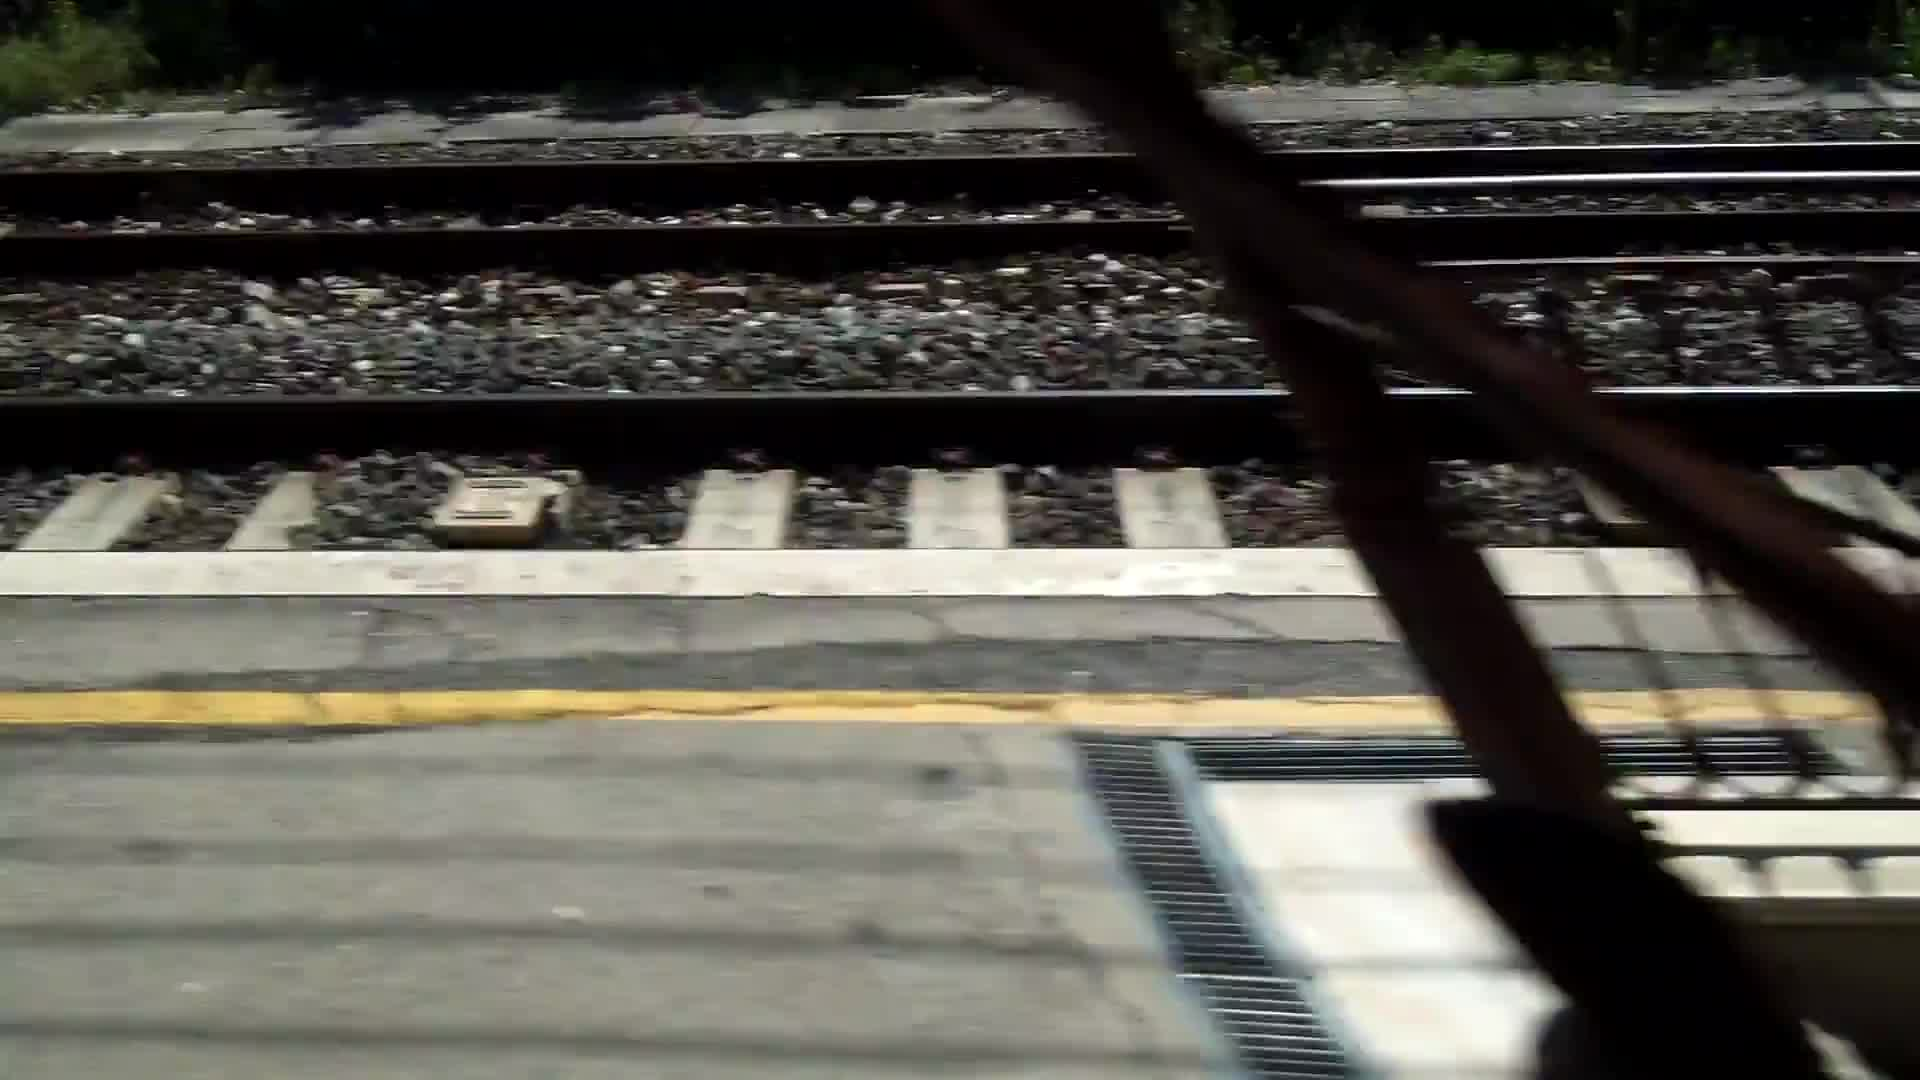 Video footage of railroad